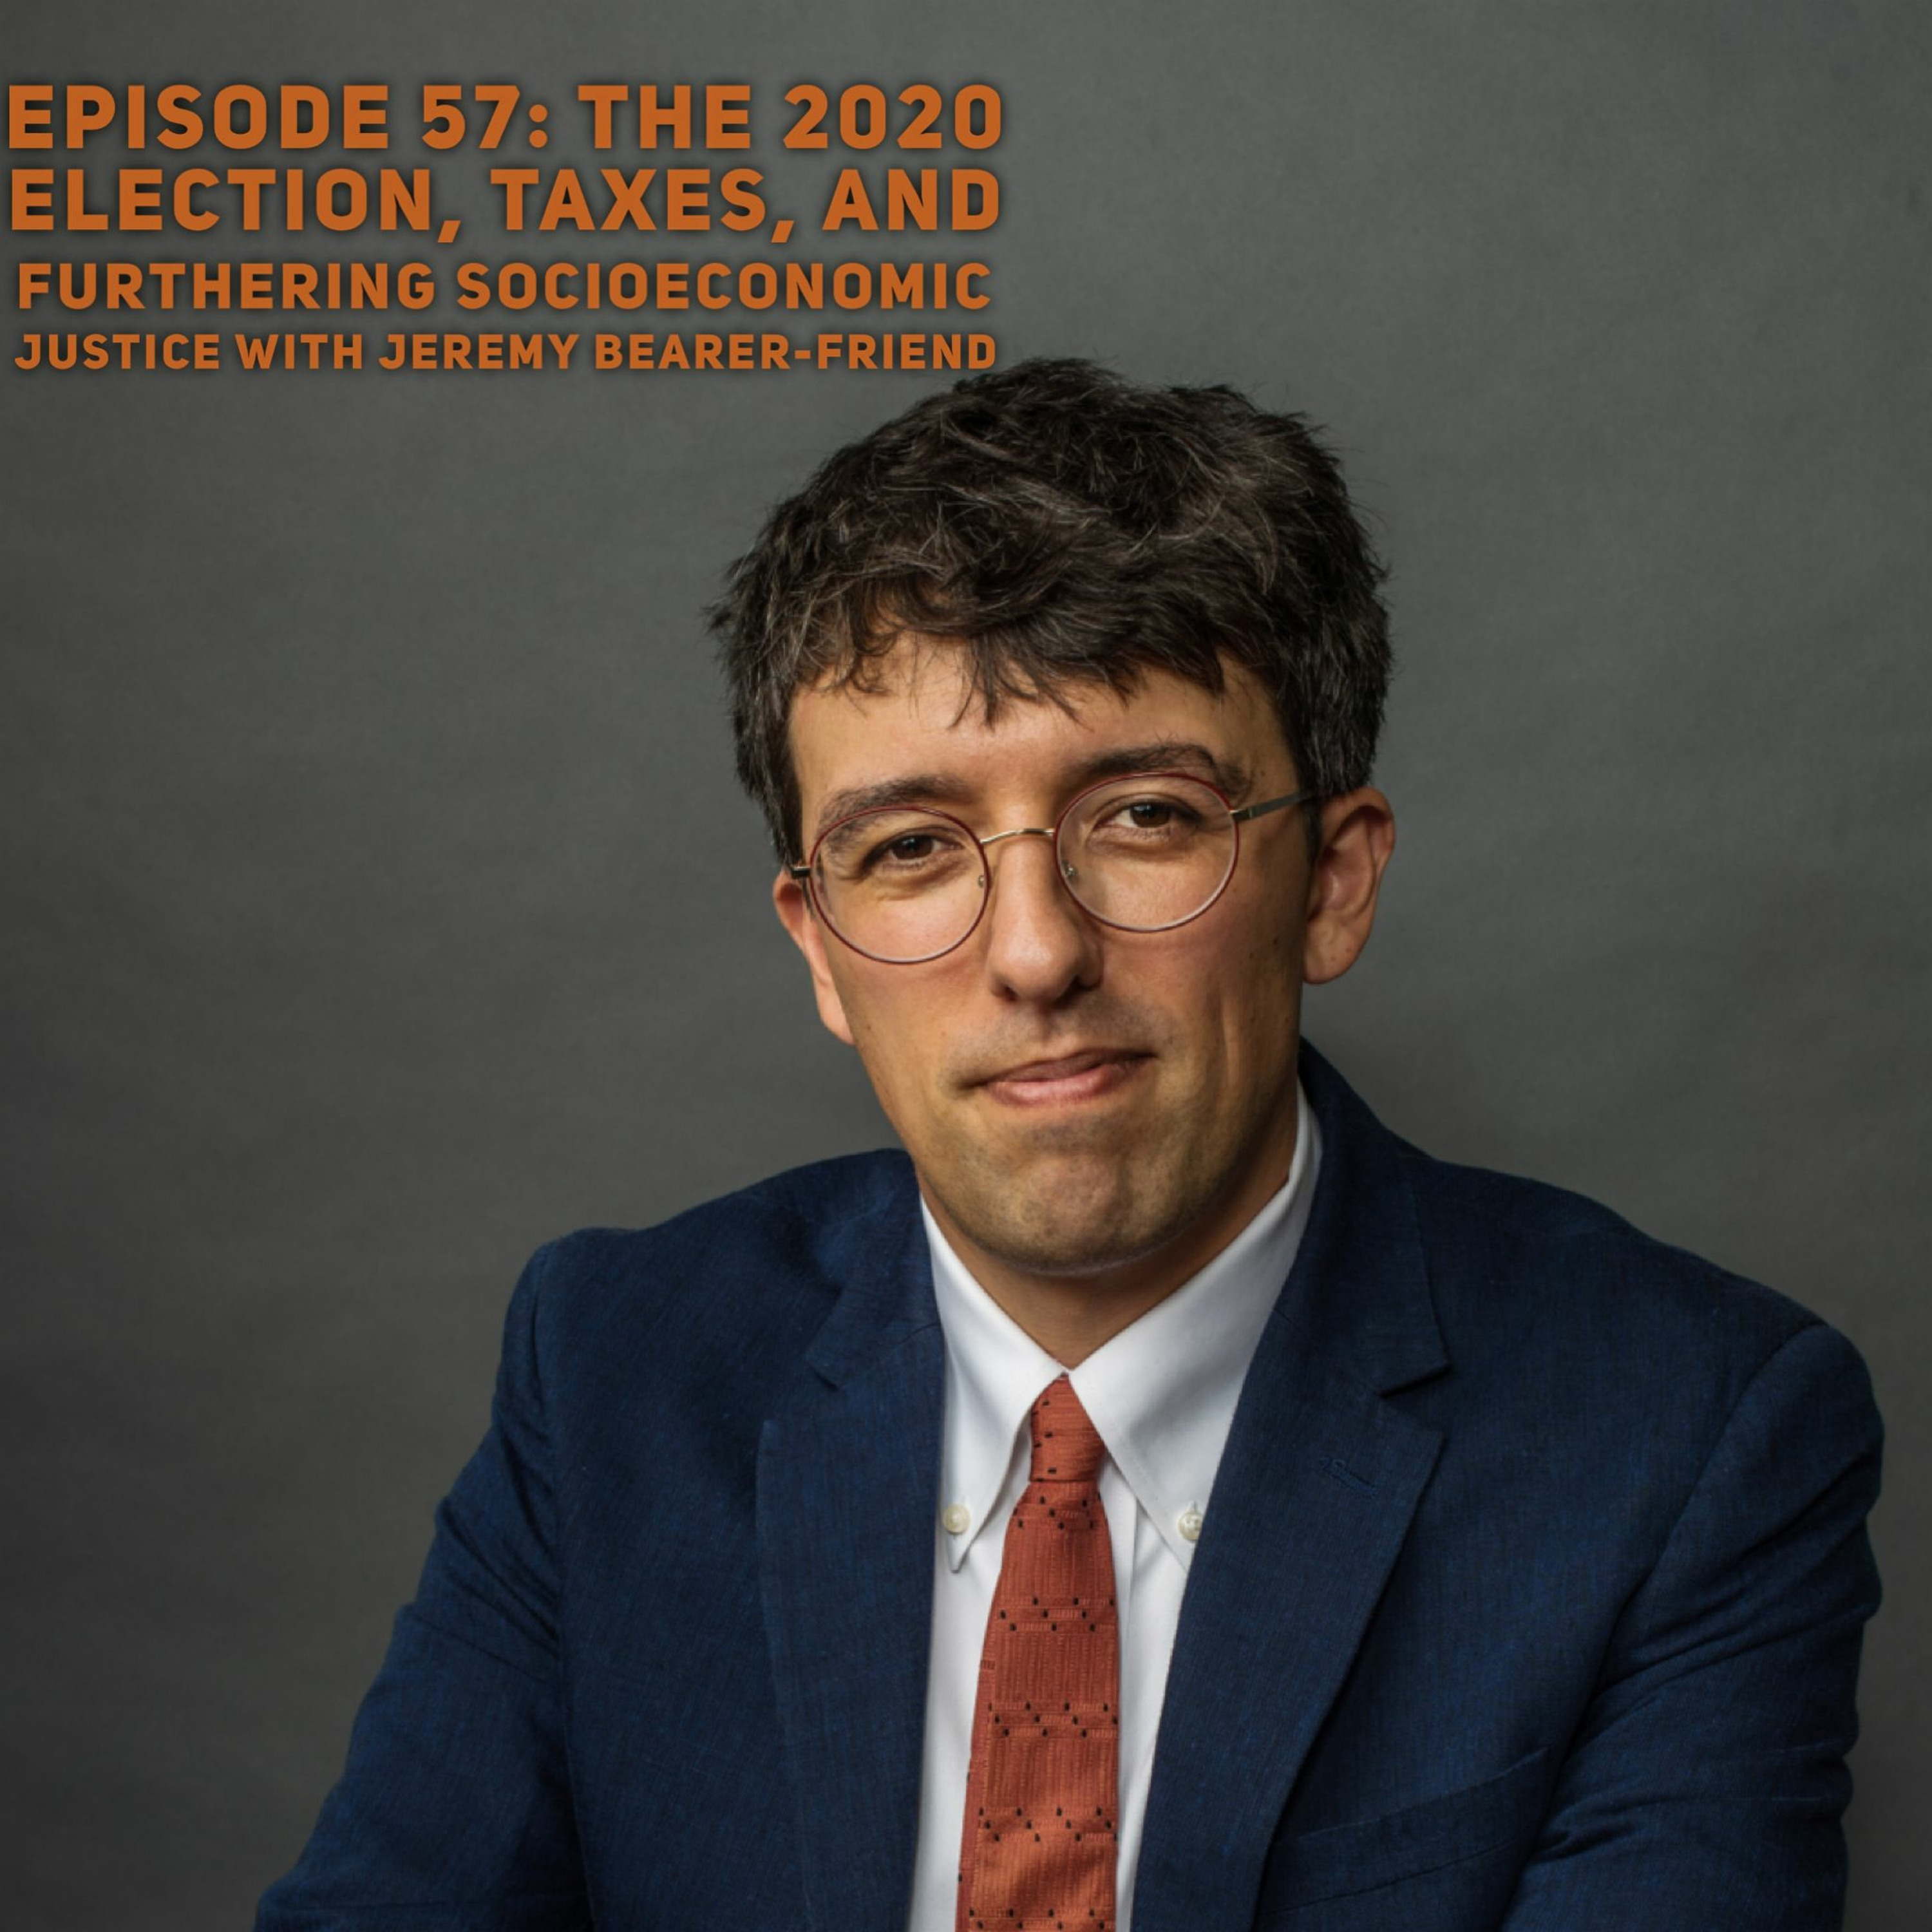 Episode 57: The 2020 Election, Taxes, and Furthering Socioeconomic Justice with Jeremy Bearer-Friend